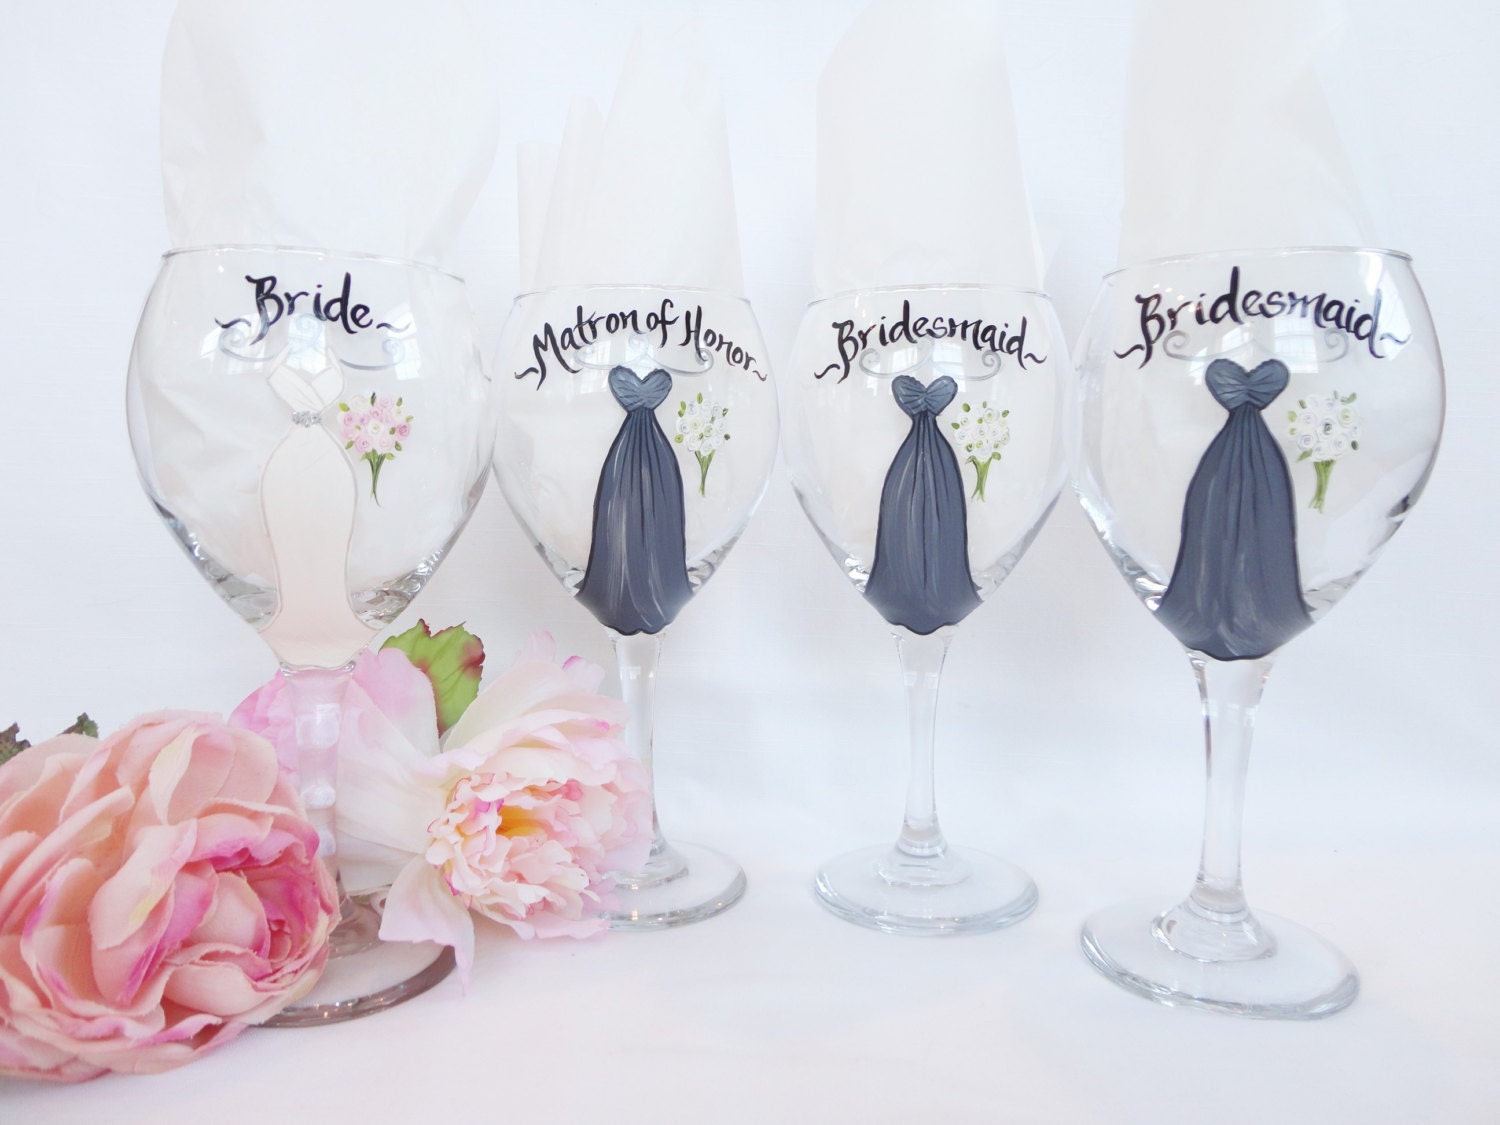 exact dress replica personalized bridesmaid wine glasses